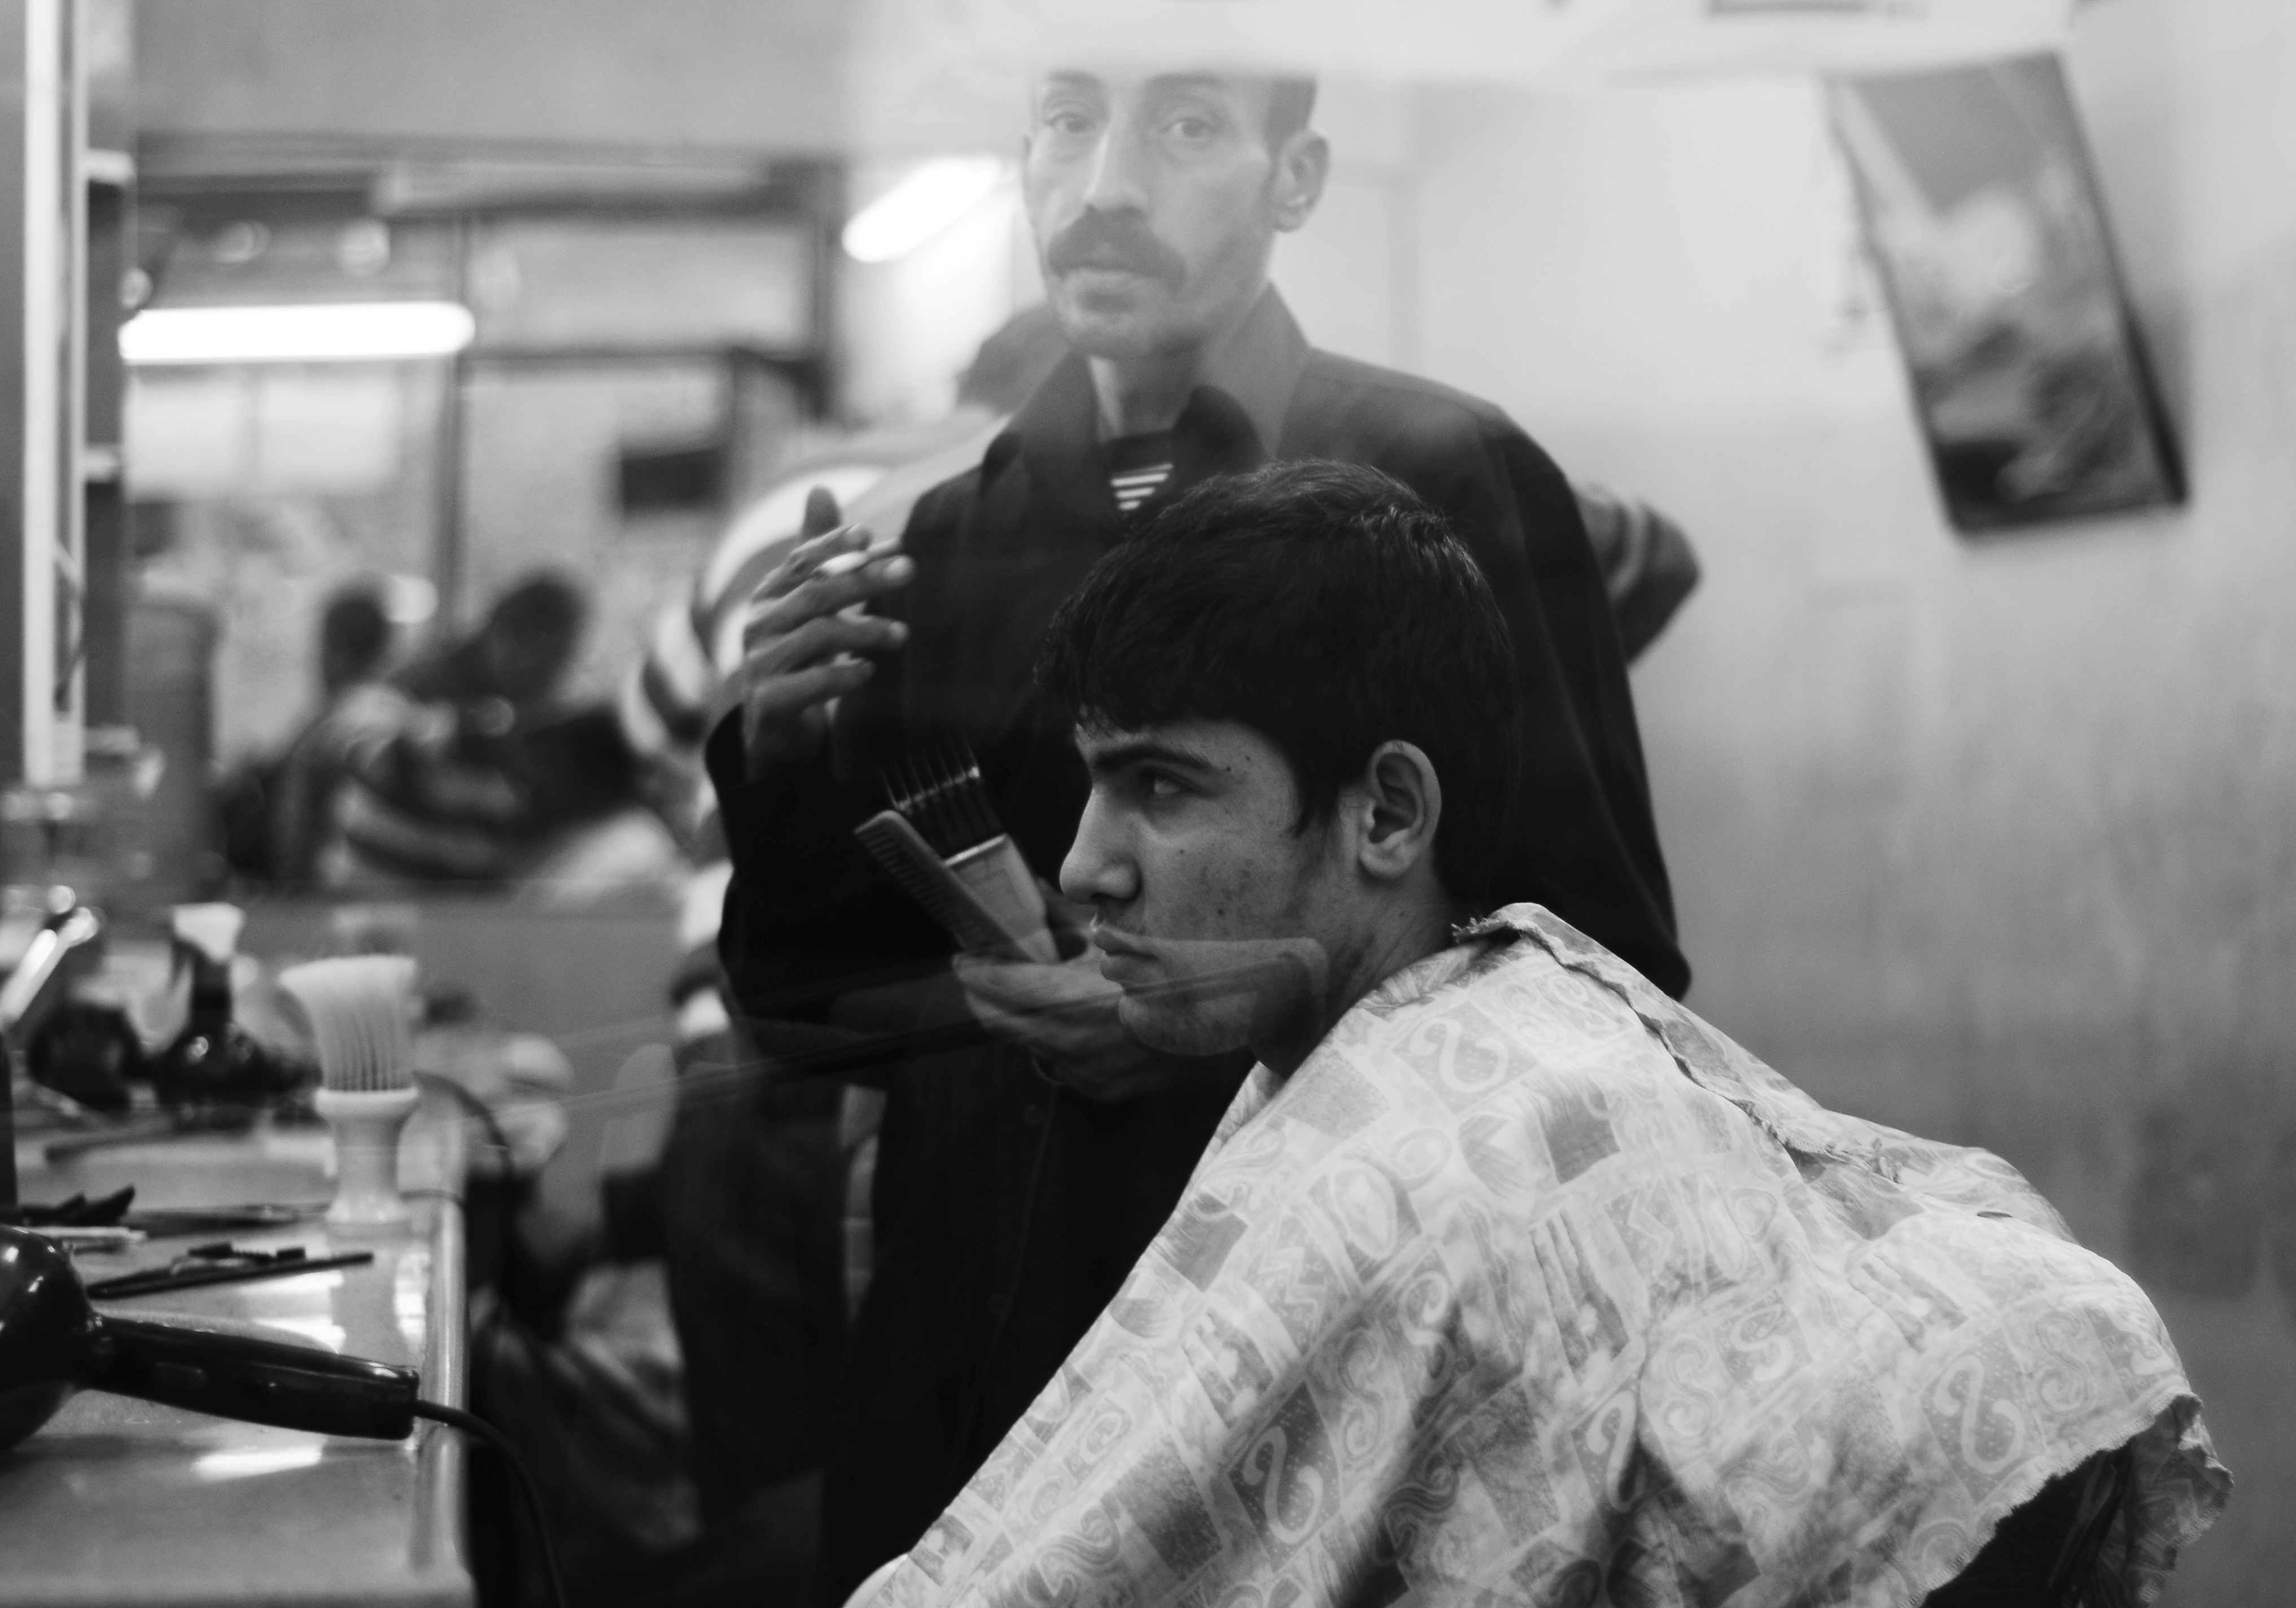 grayscale photo of man inside barber shop